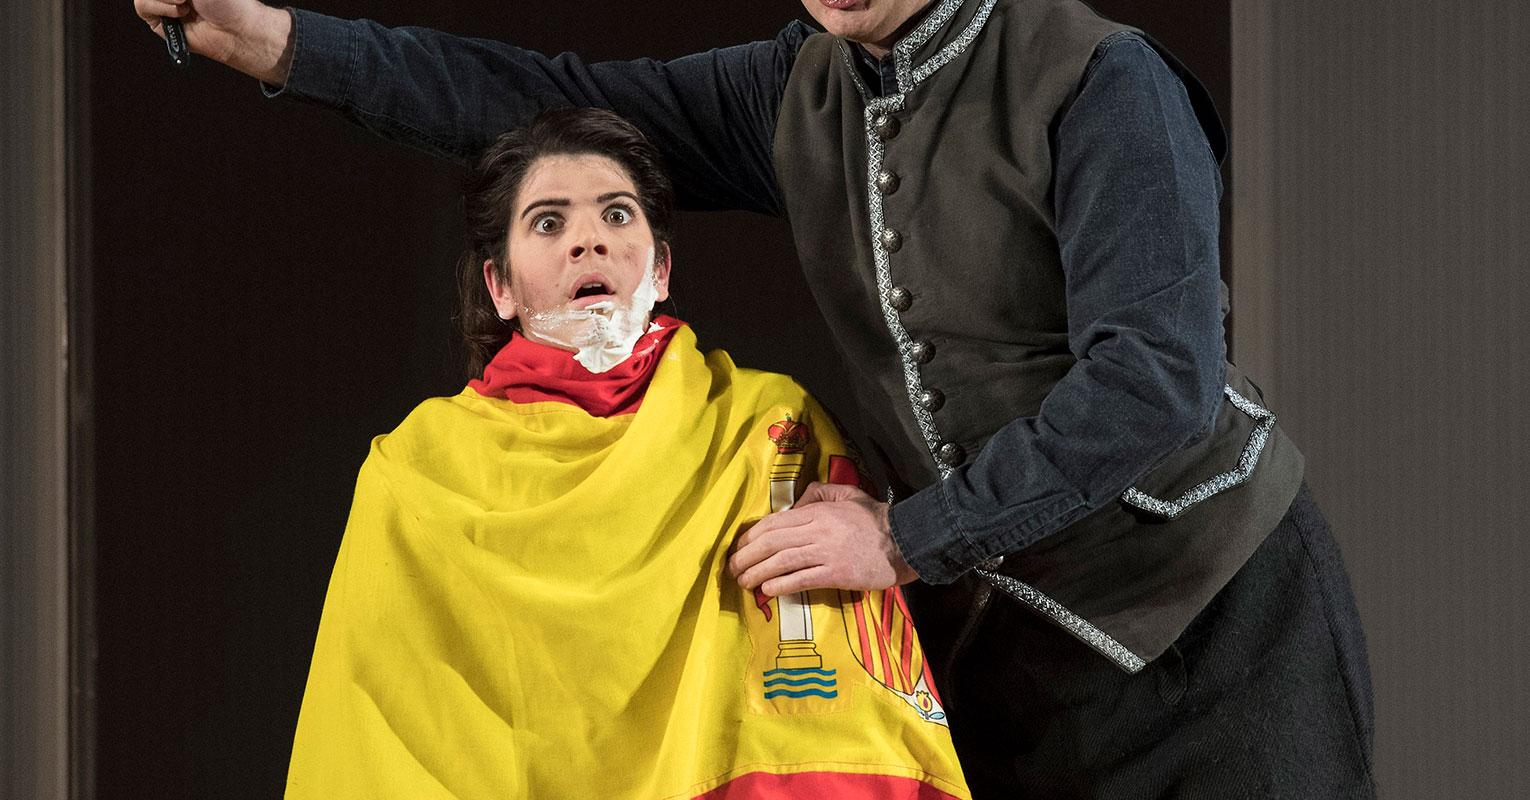 ENO 17/18: The Marriage of Figaro Katie Coventry Thomas Oliemans (c) Alastair Muir